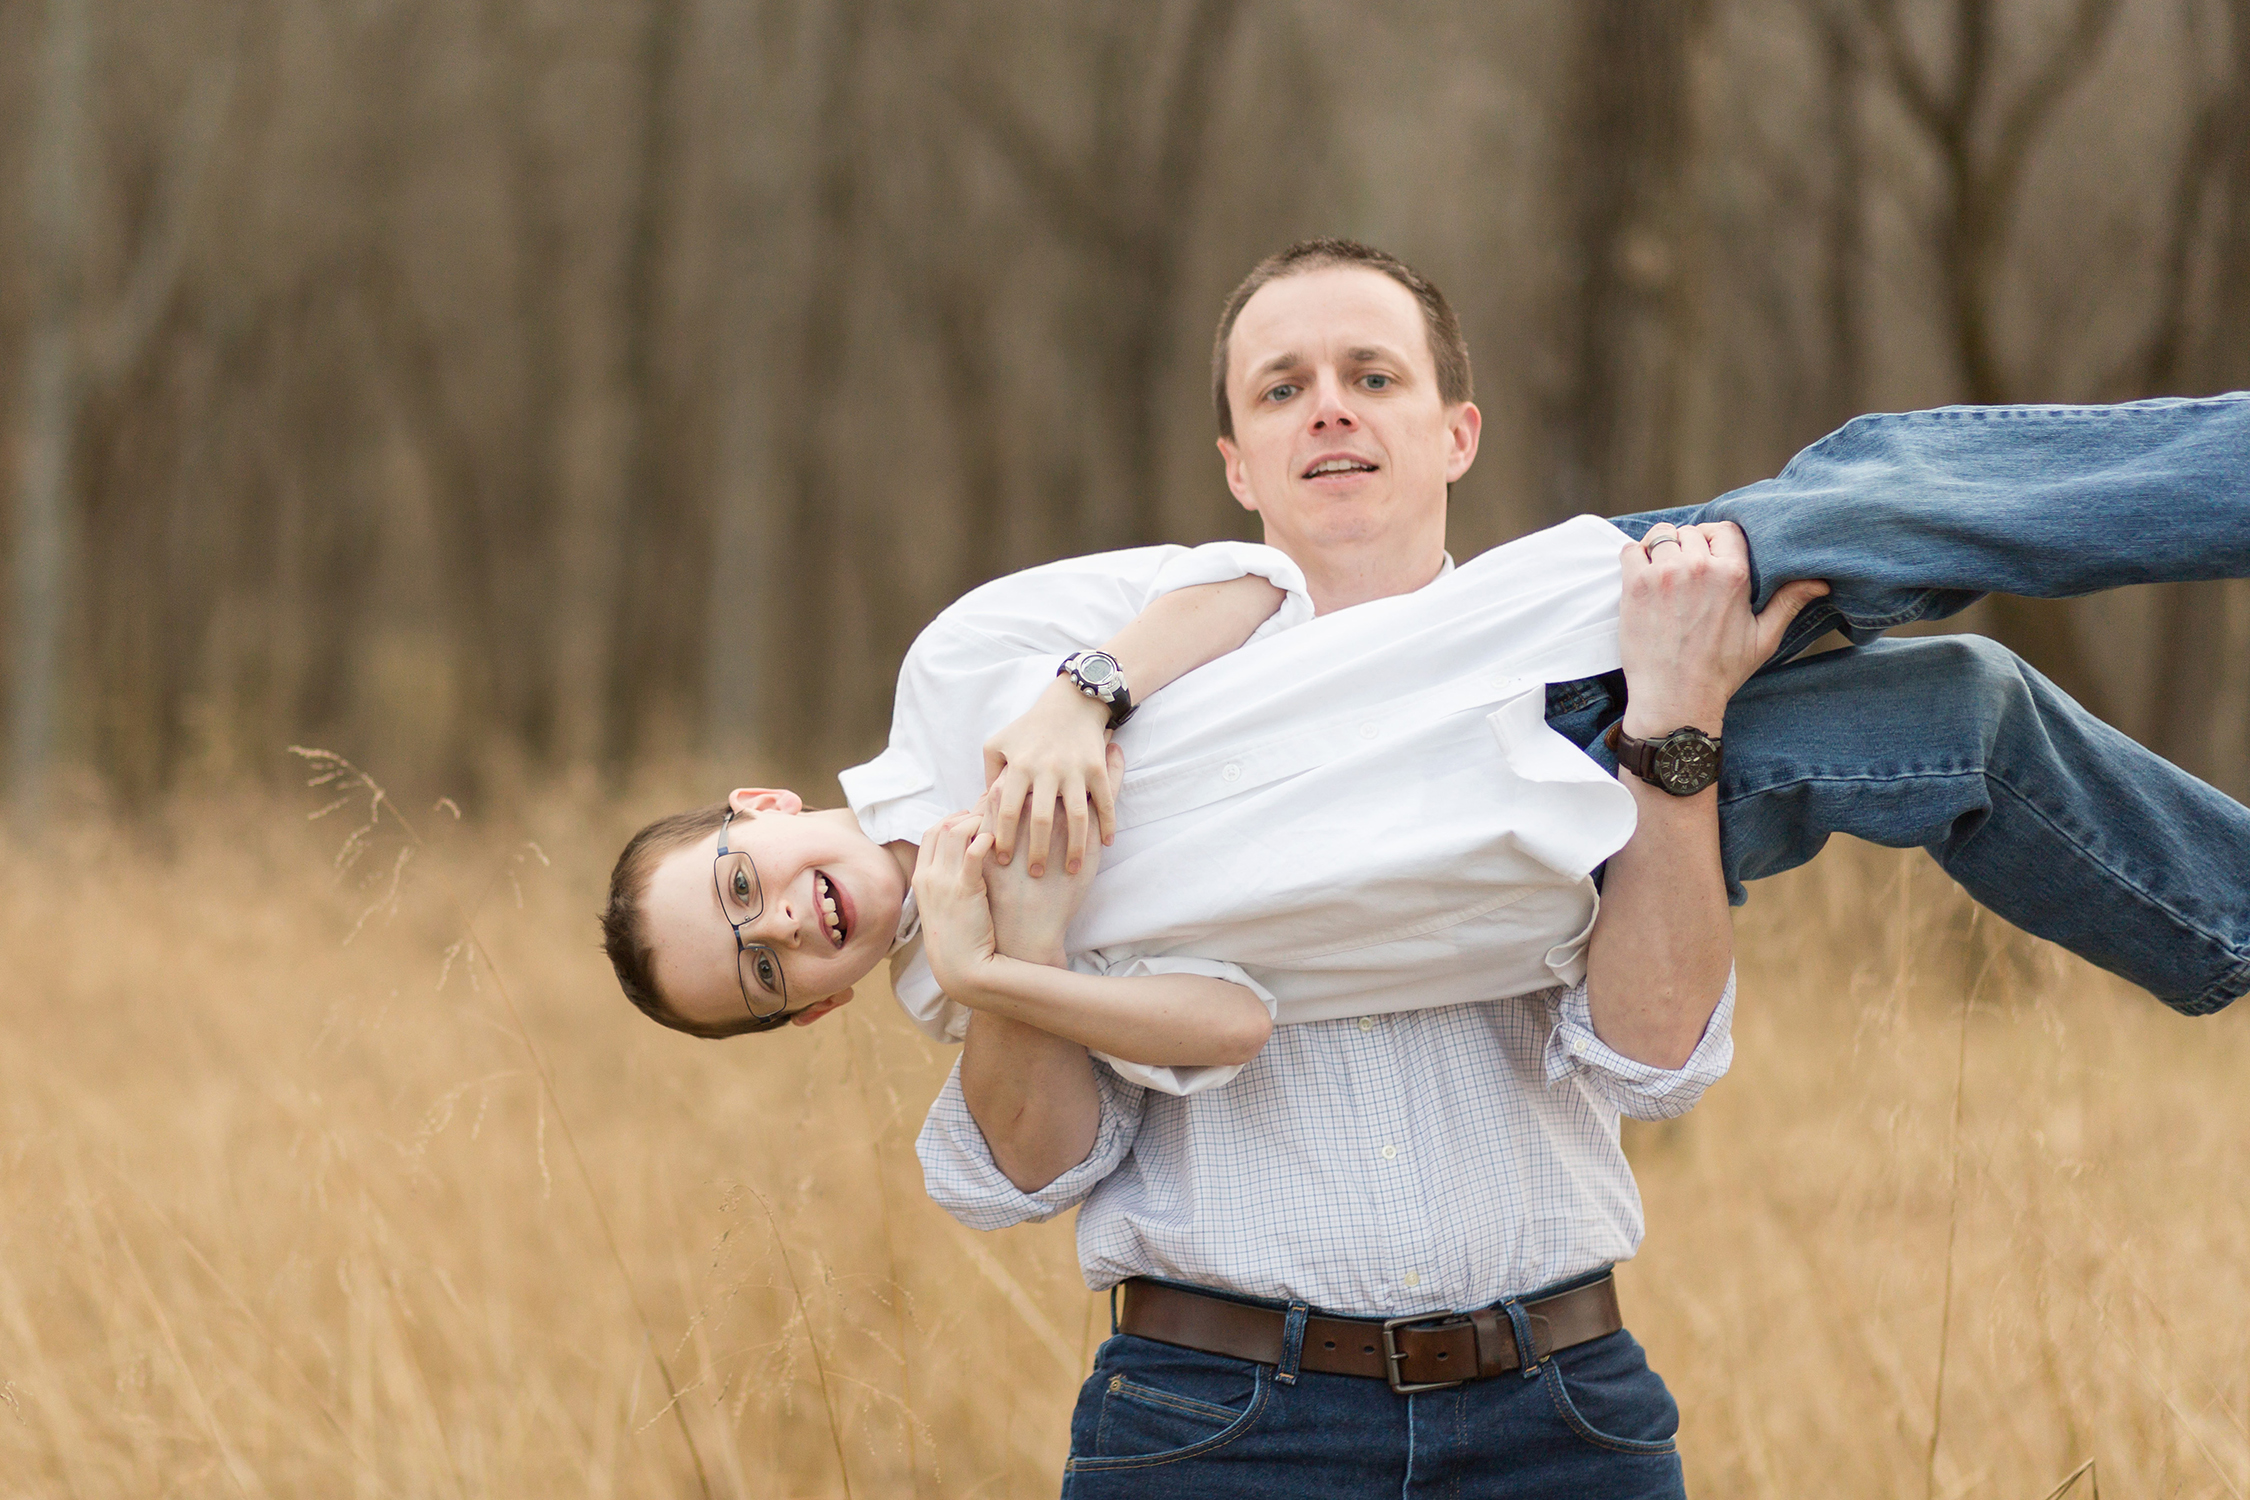 Father picking up young son in playful way | St. Louis Family Photography